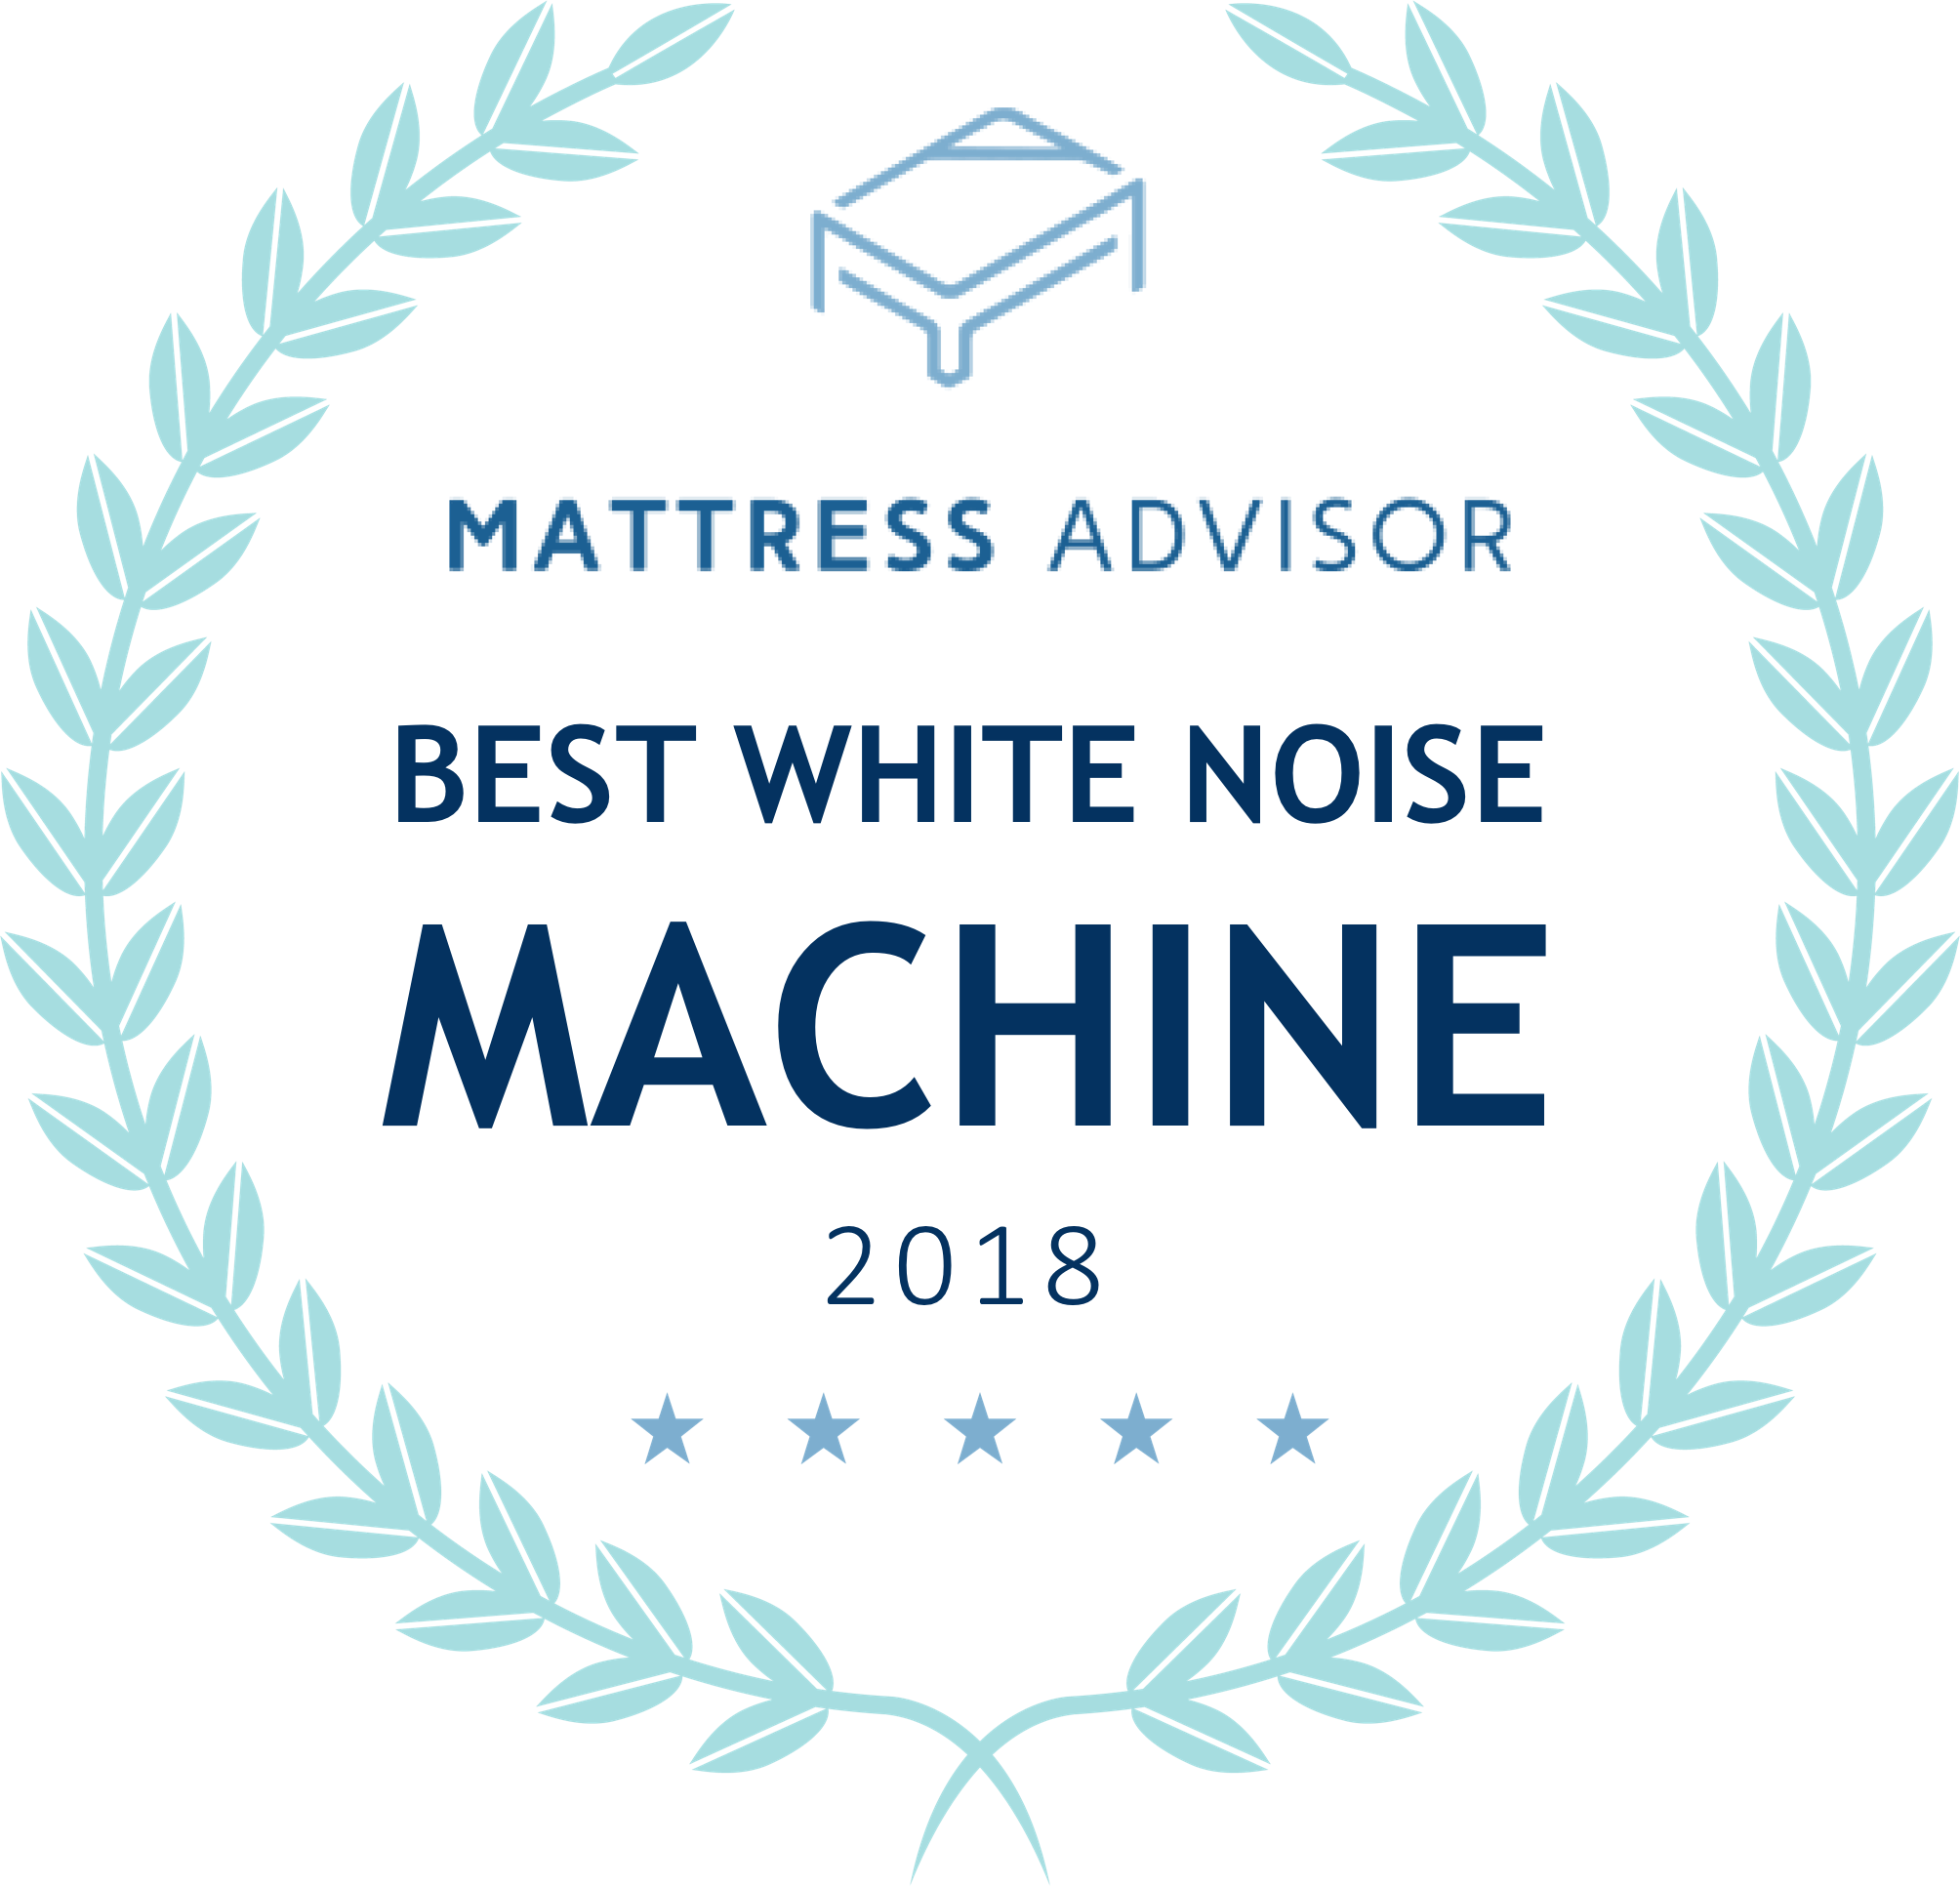 The Best White Noise Machines of 2018 award